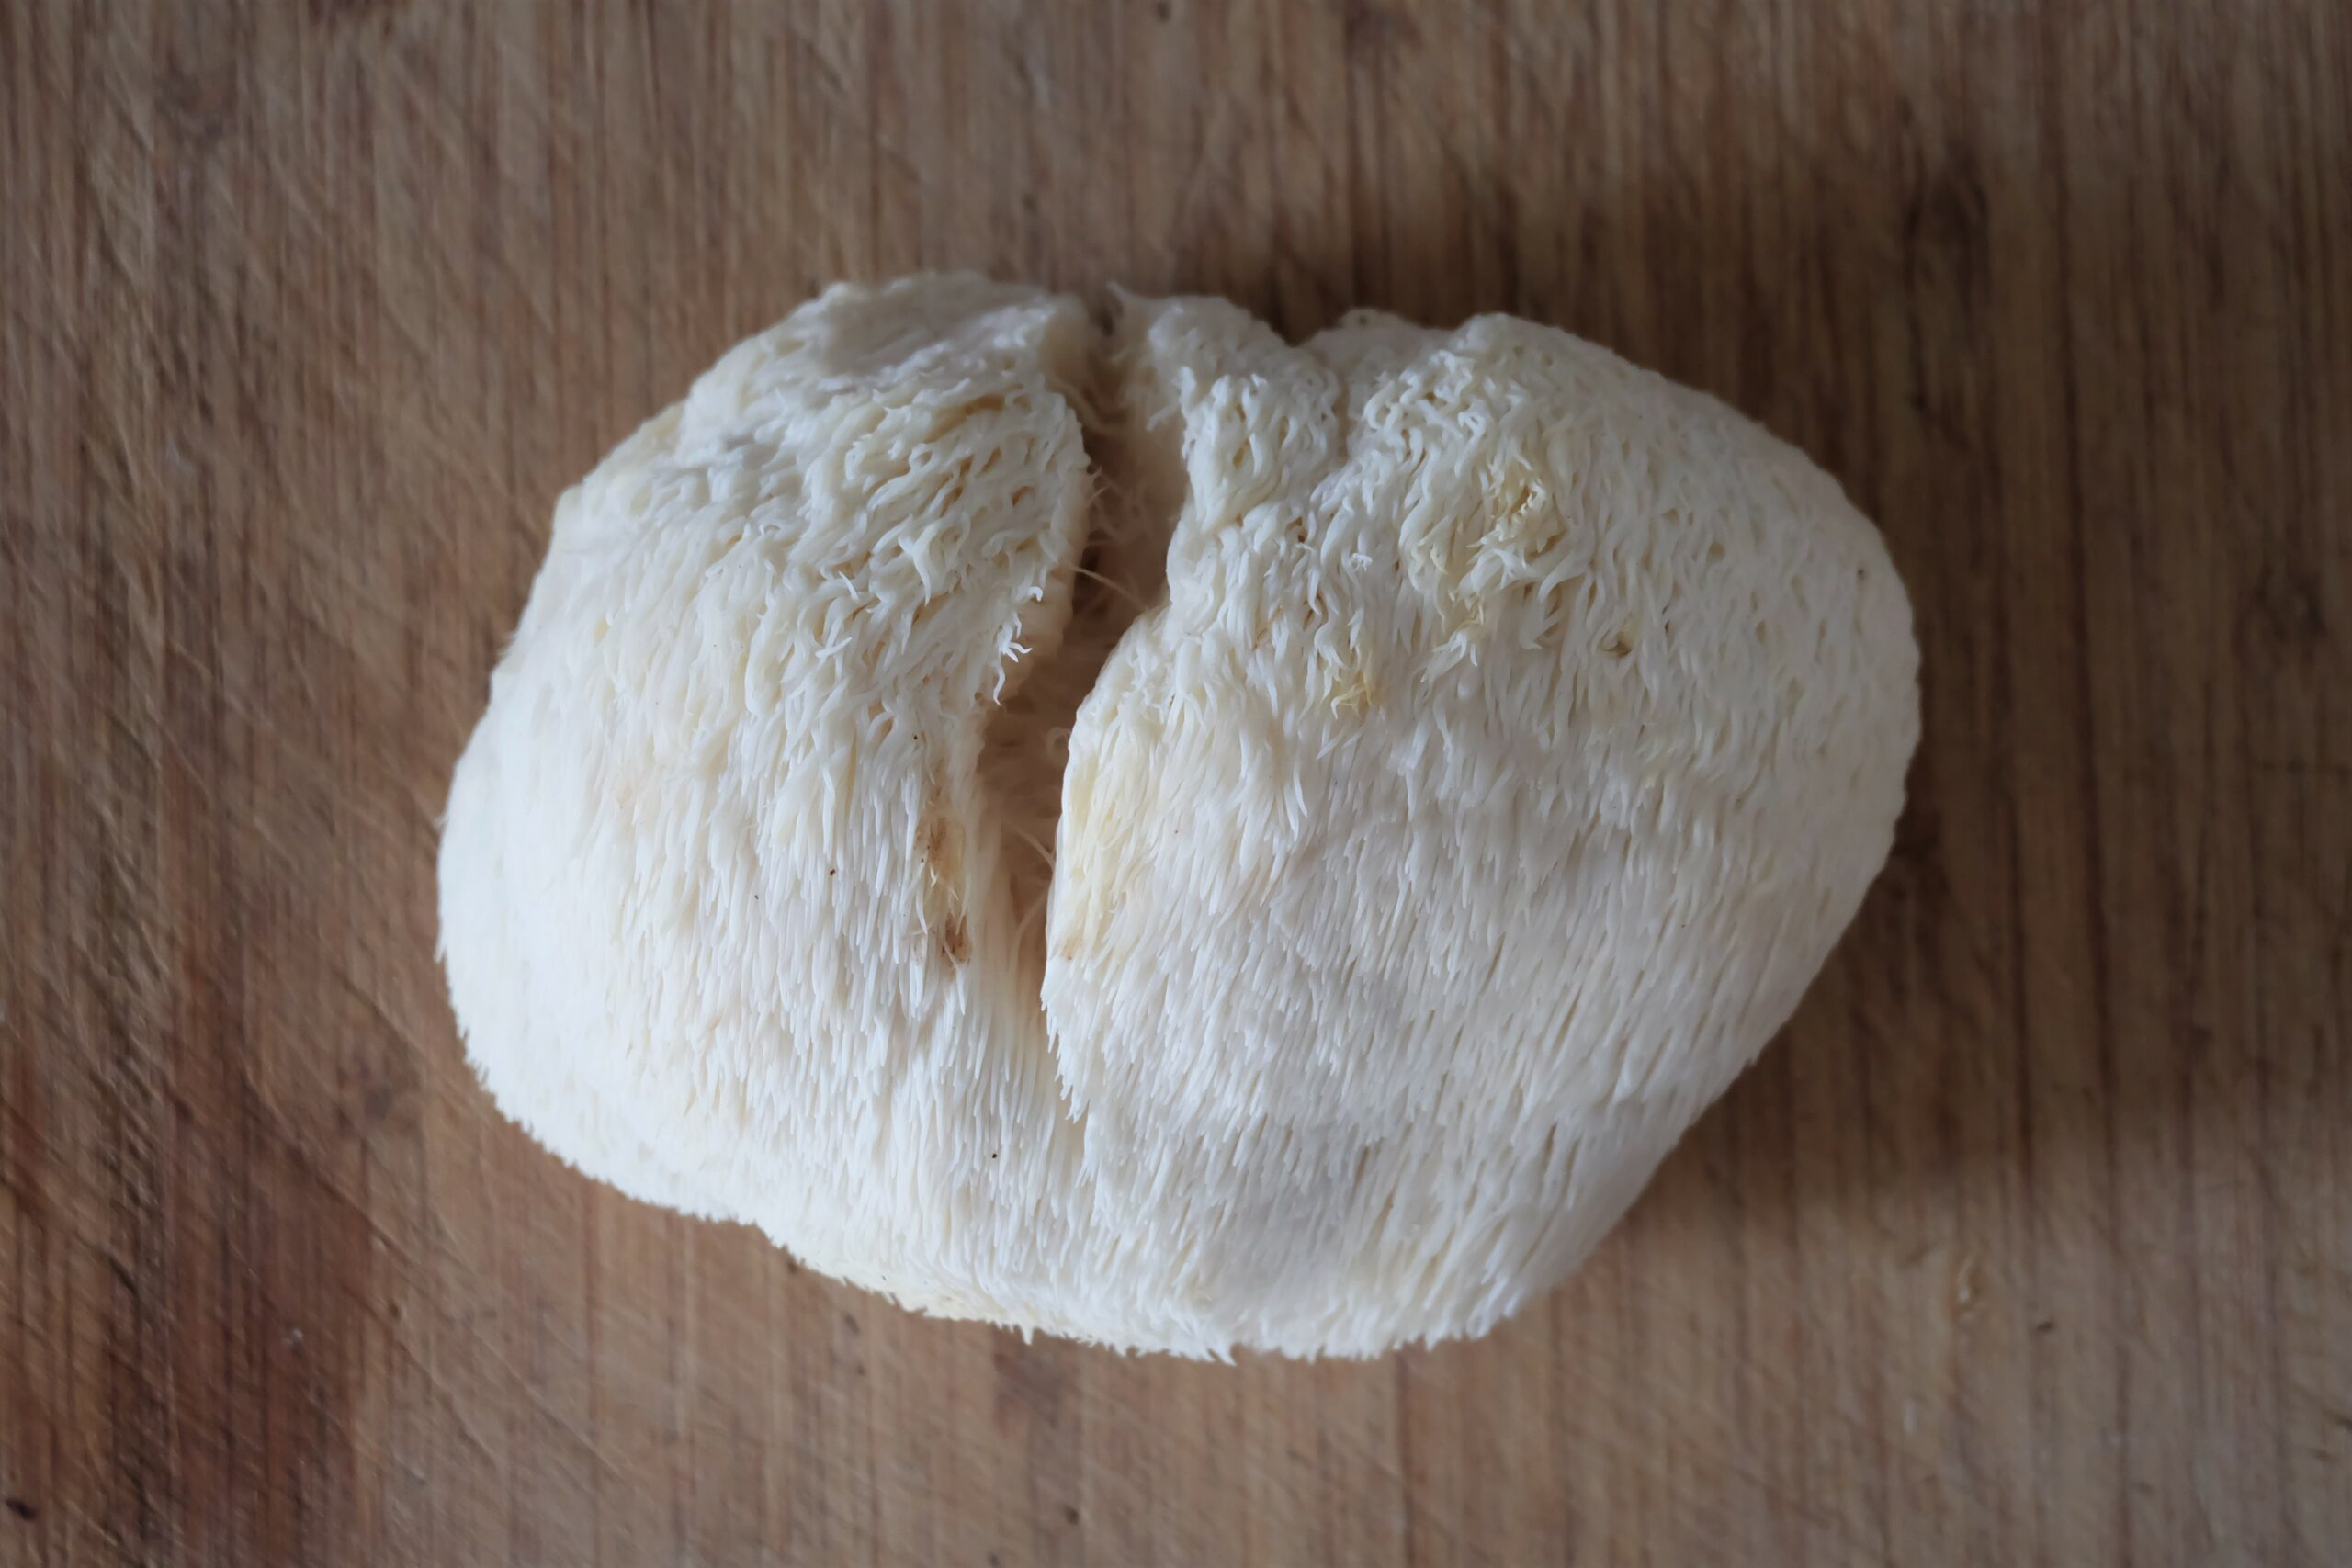 Cure for Alzheimer's? Introducing the Lion's Mane mushroom